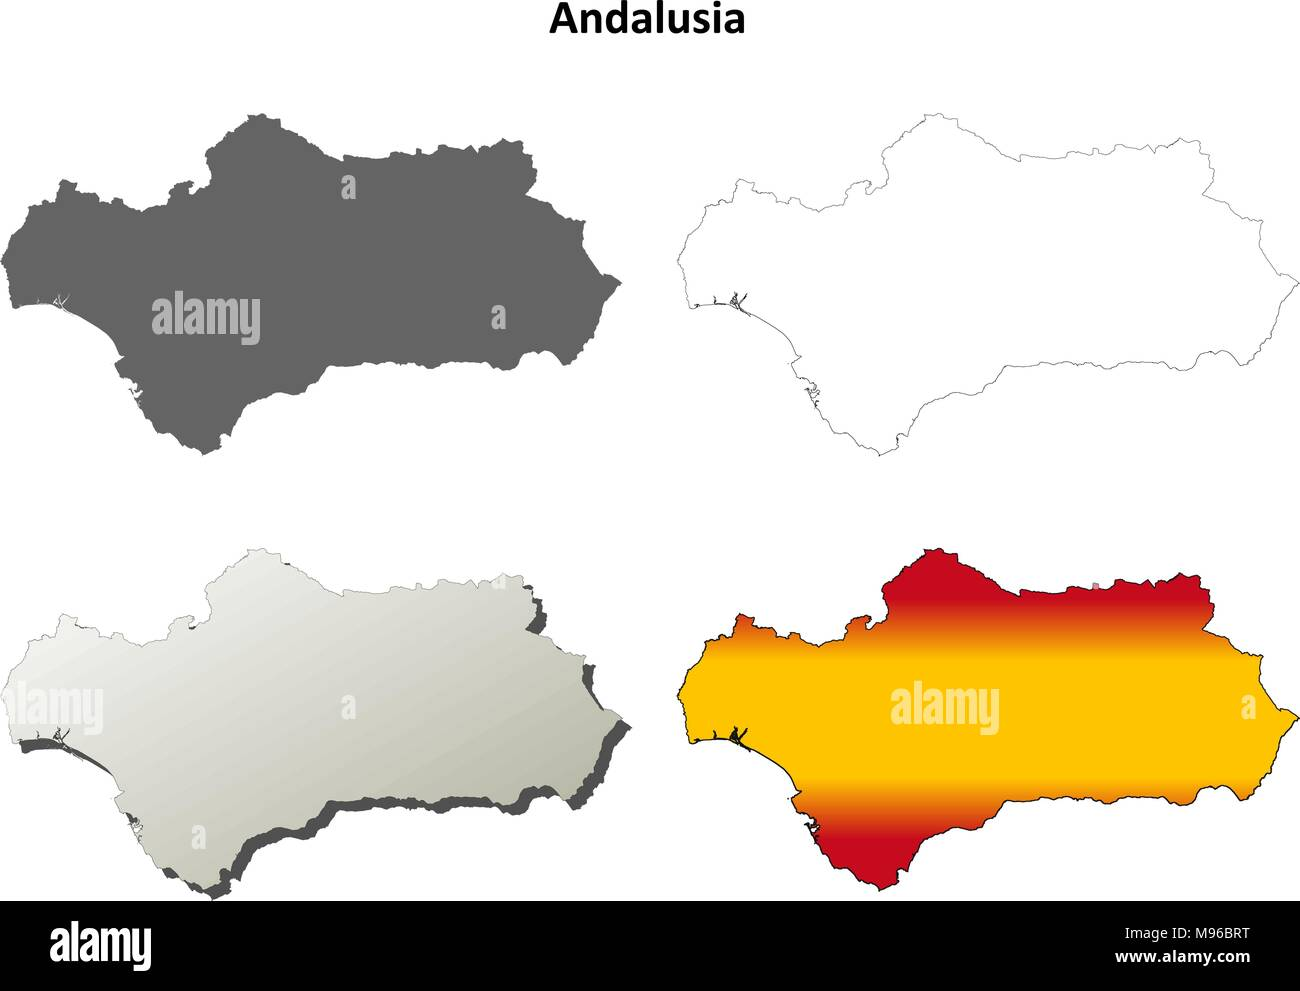 Andalusia Map Stock Photos Andalusia Map Stock Images Alamy